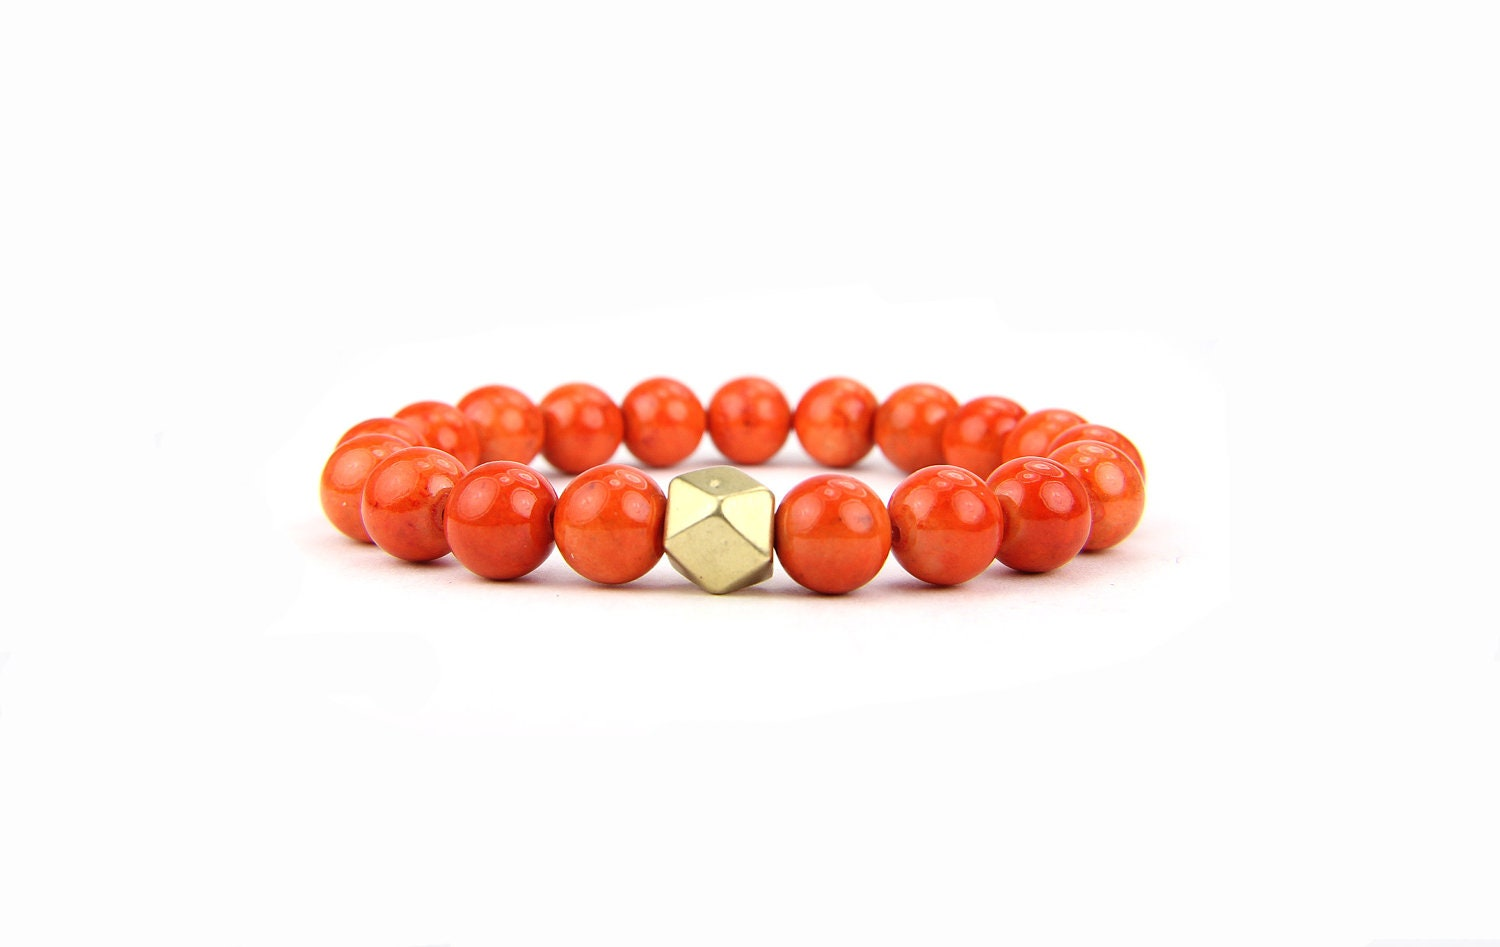 Stretch Bracelet Stacking Orange Gemstone Valentines Day Gift under 25 - Thebracelettree